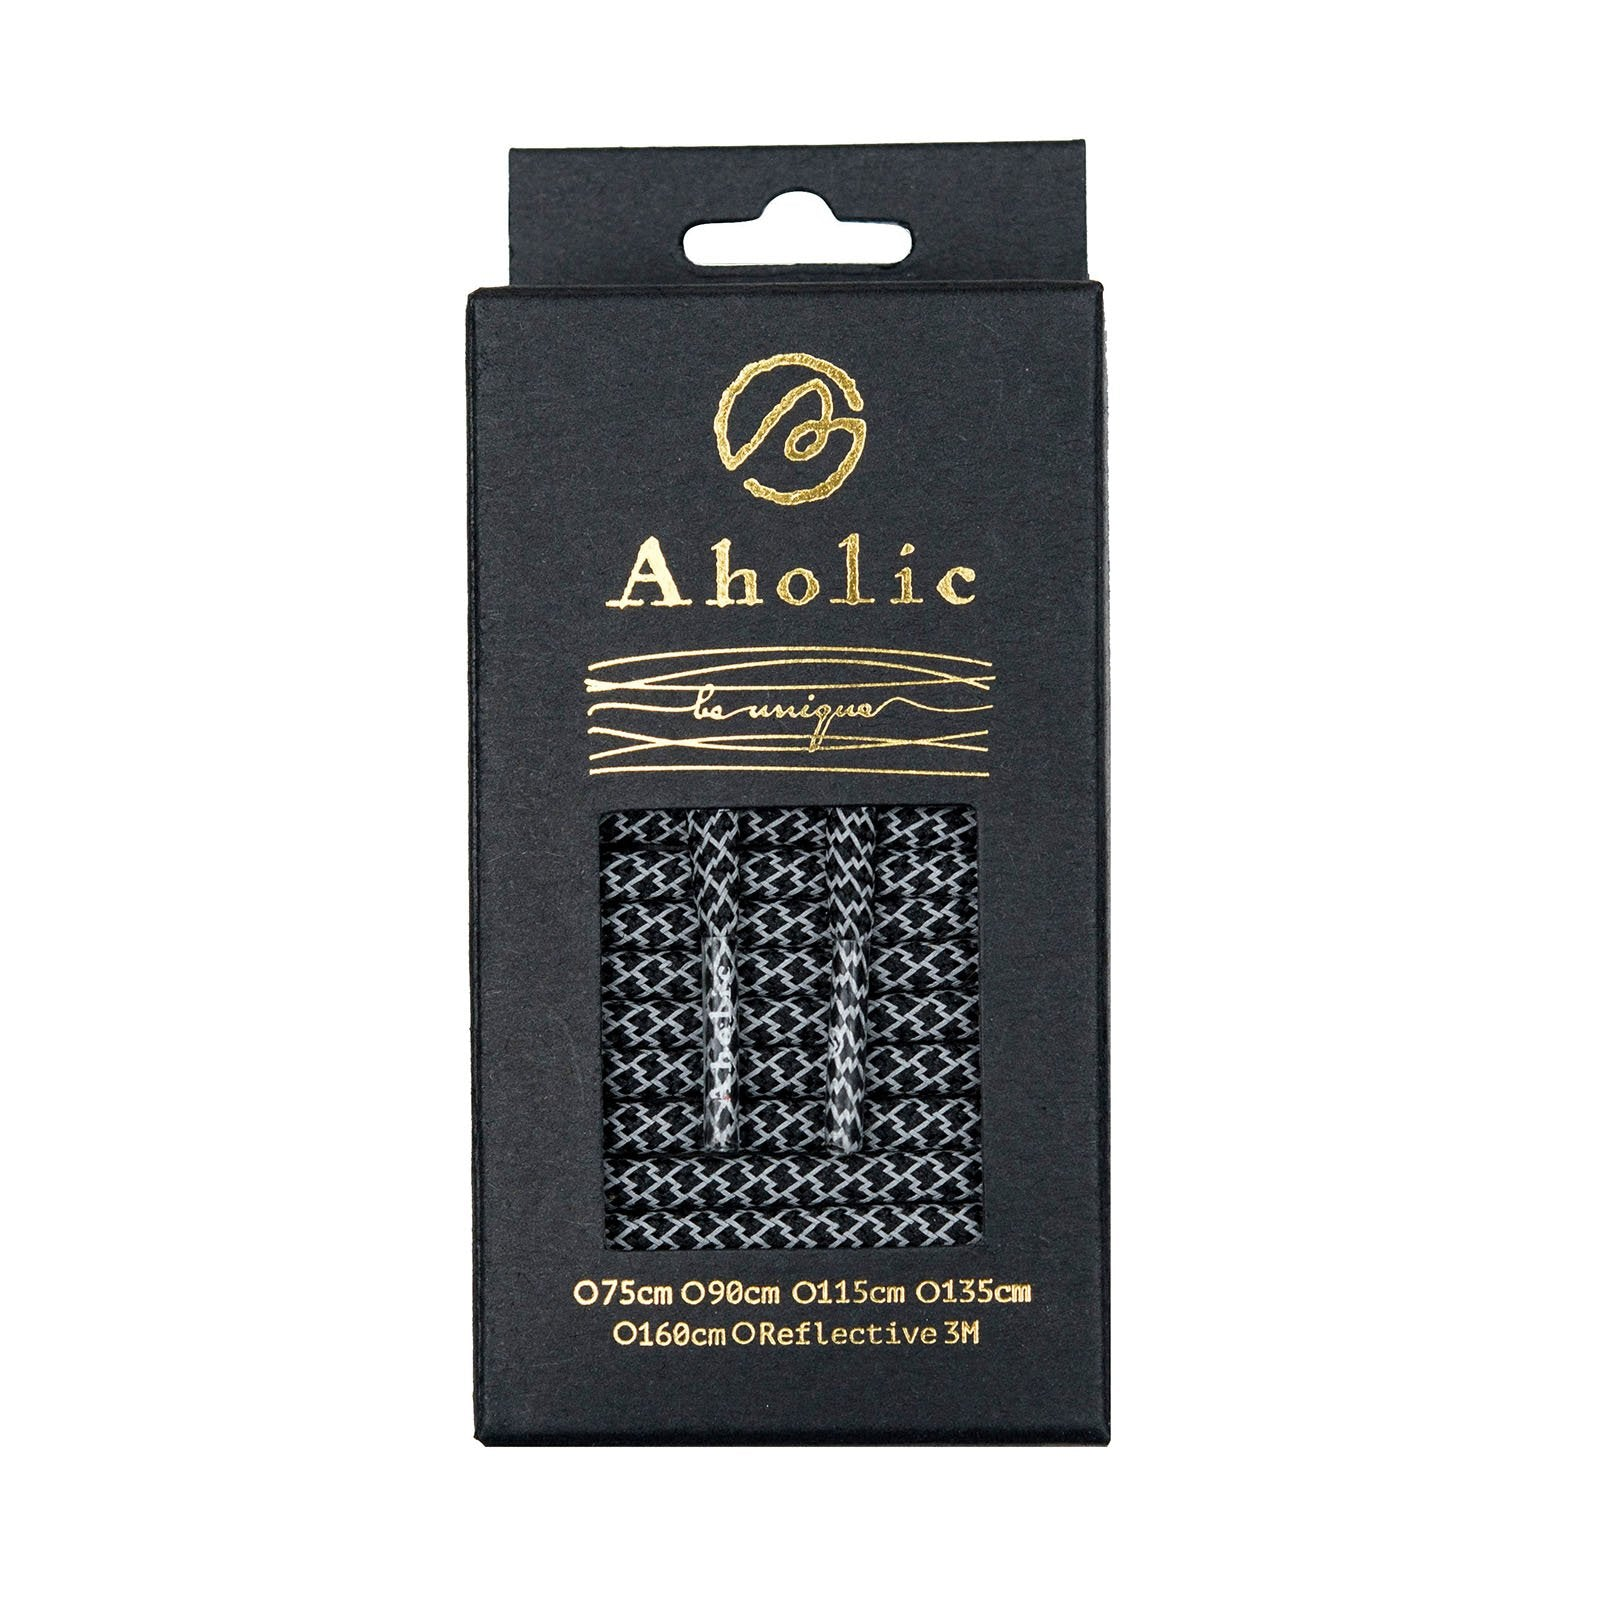 Aholic 3m Reflective Round Shoelaces (3M反光圓鞋帶) - Black Serpentine (黑蛇紋)-Shoelaces-Navy Selected Shop